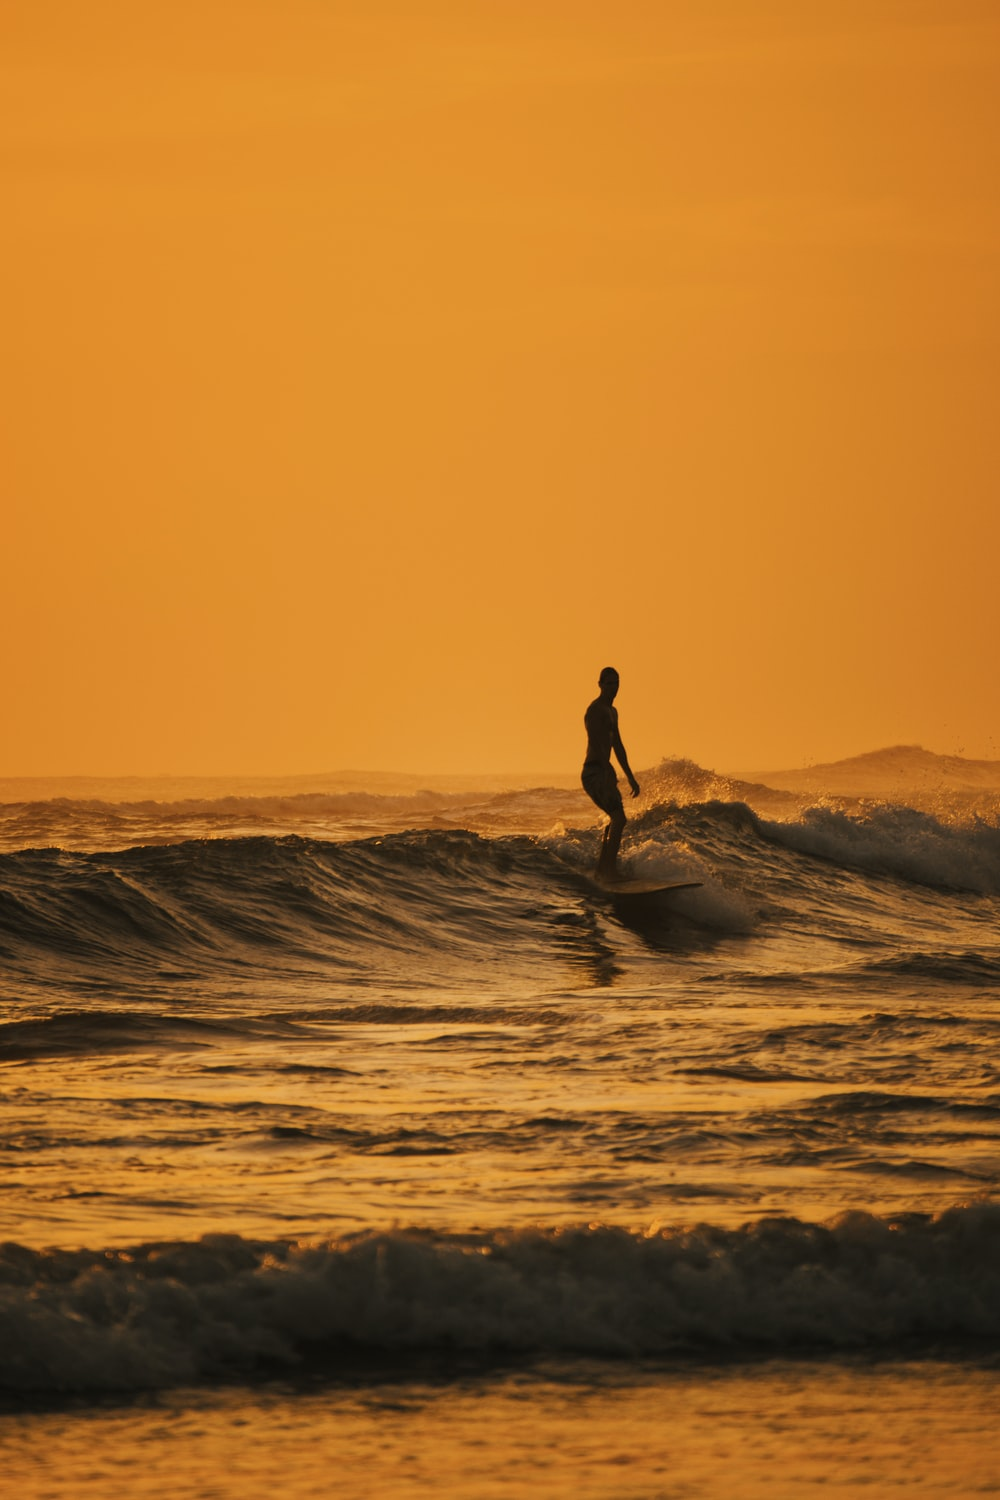 silhouette of person riding on white surfboard